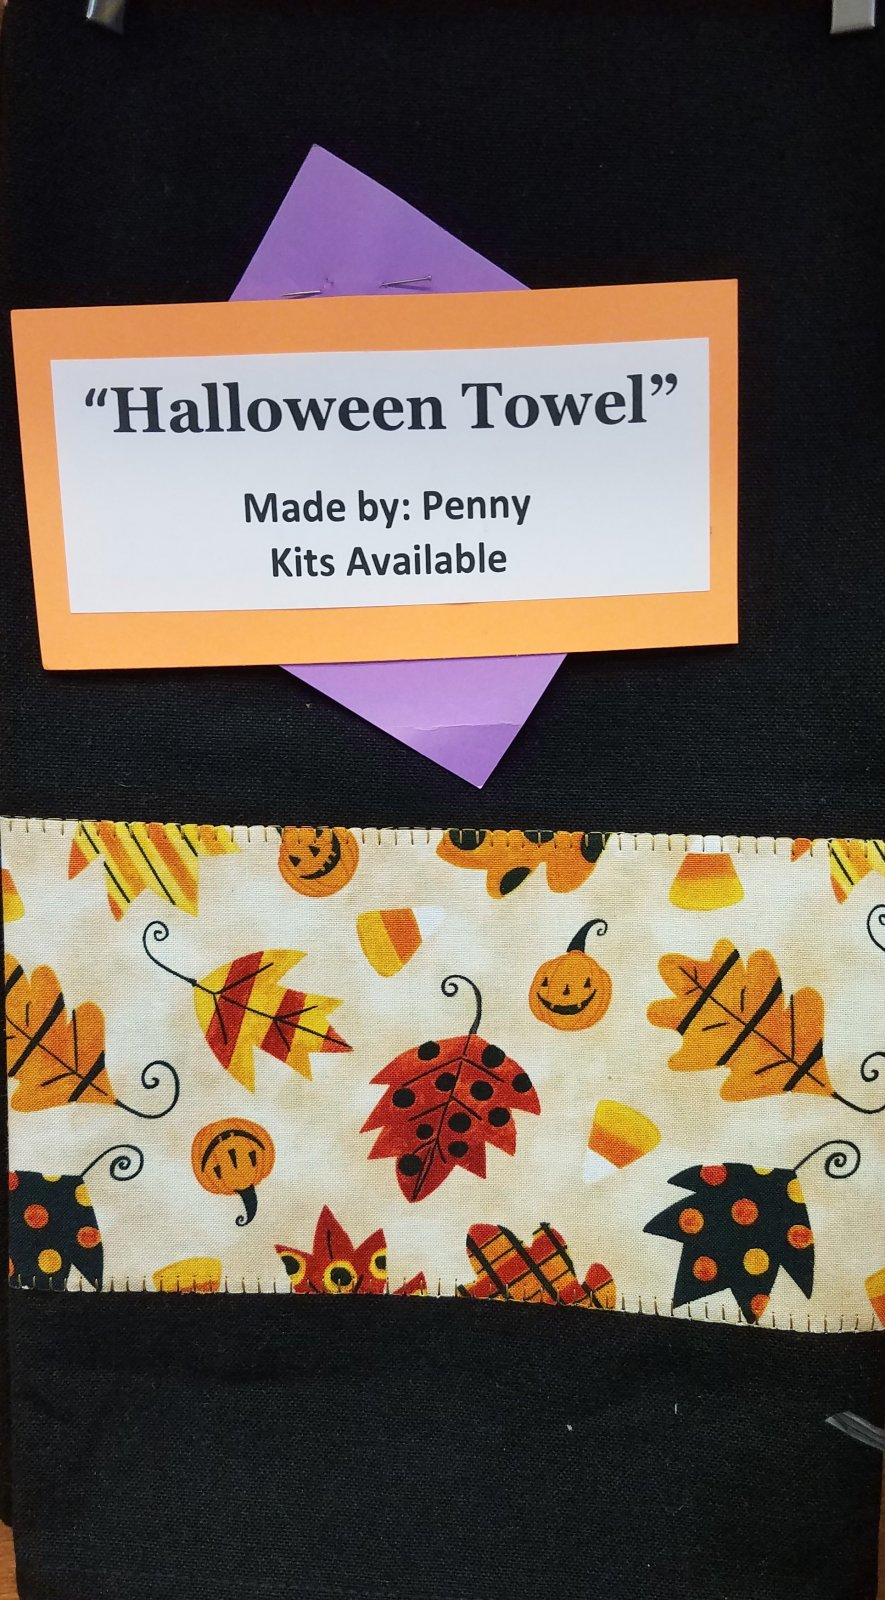 Halloween Towel Kit